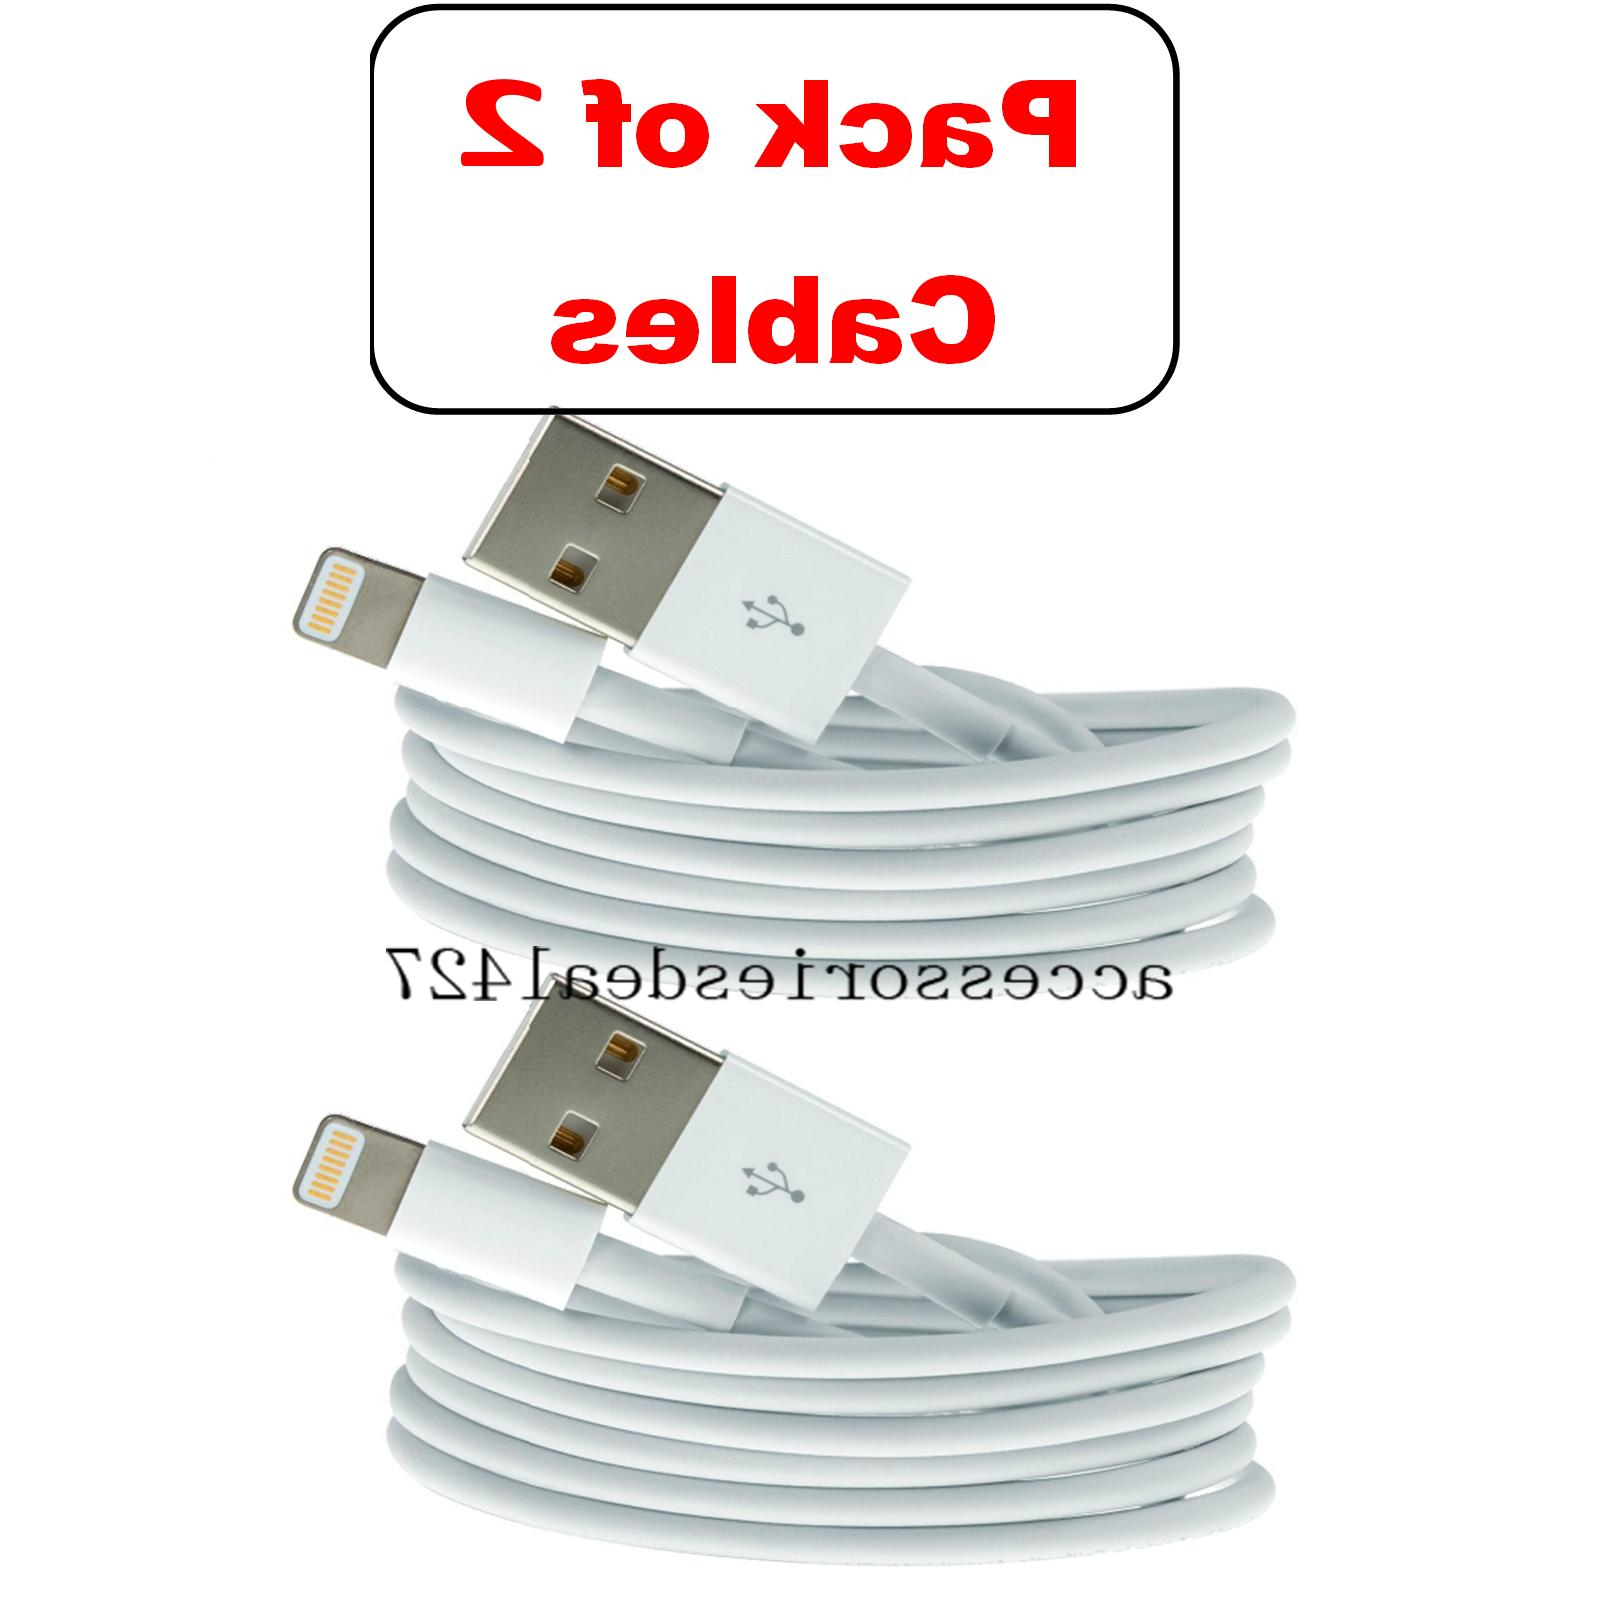 2pack 3ft usb cable for oem original